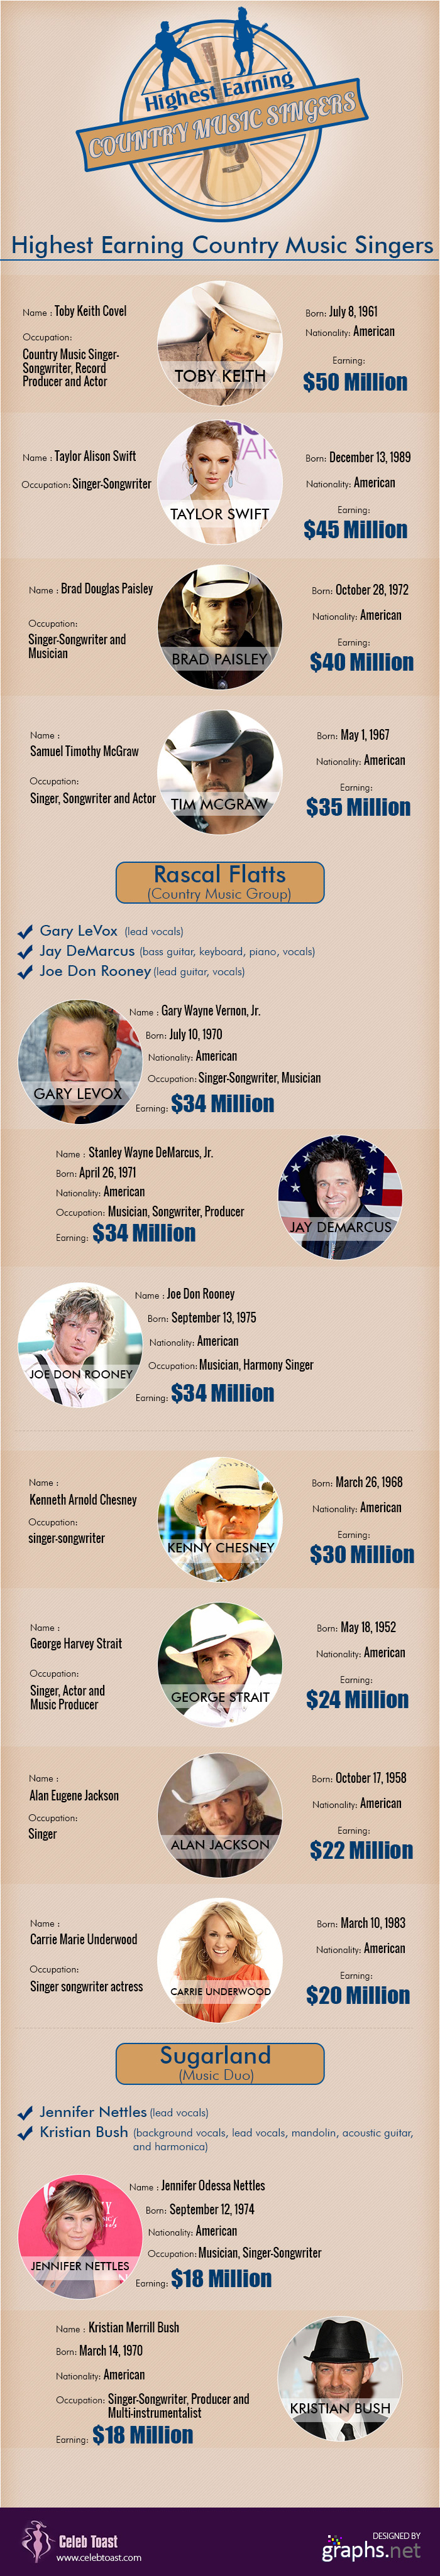 Earnings Of American Music Singers